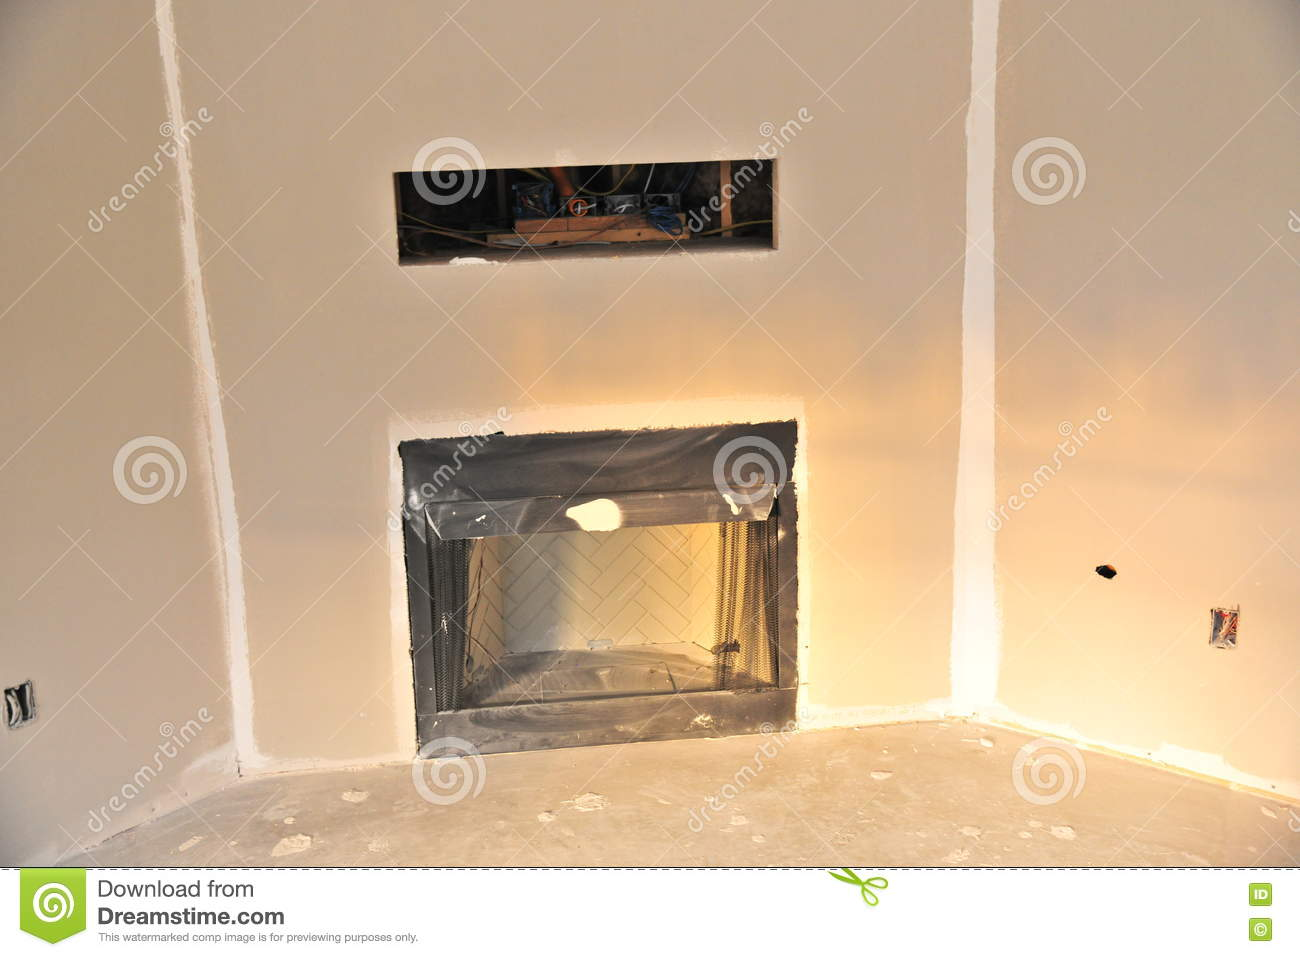 Television In Wall Conduit Above Fireplace Stock Photo Image Of Wiring For Home